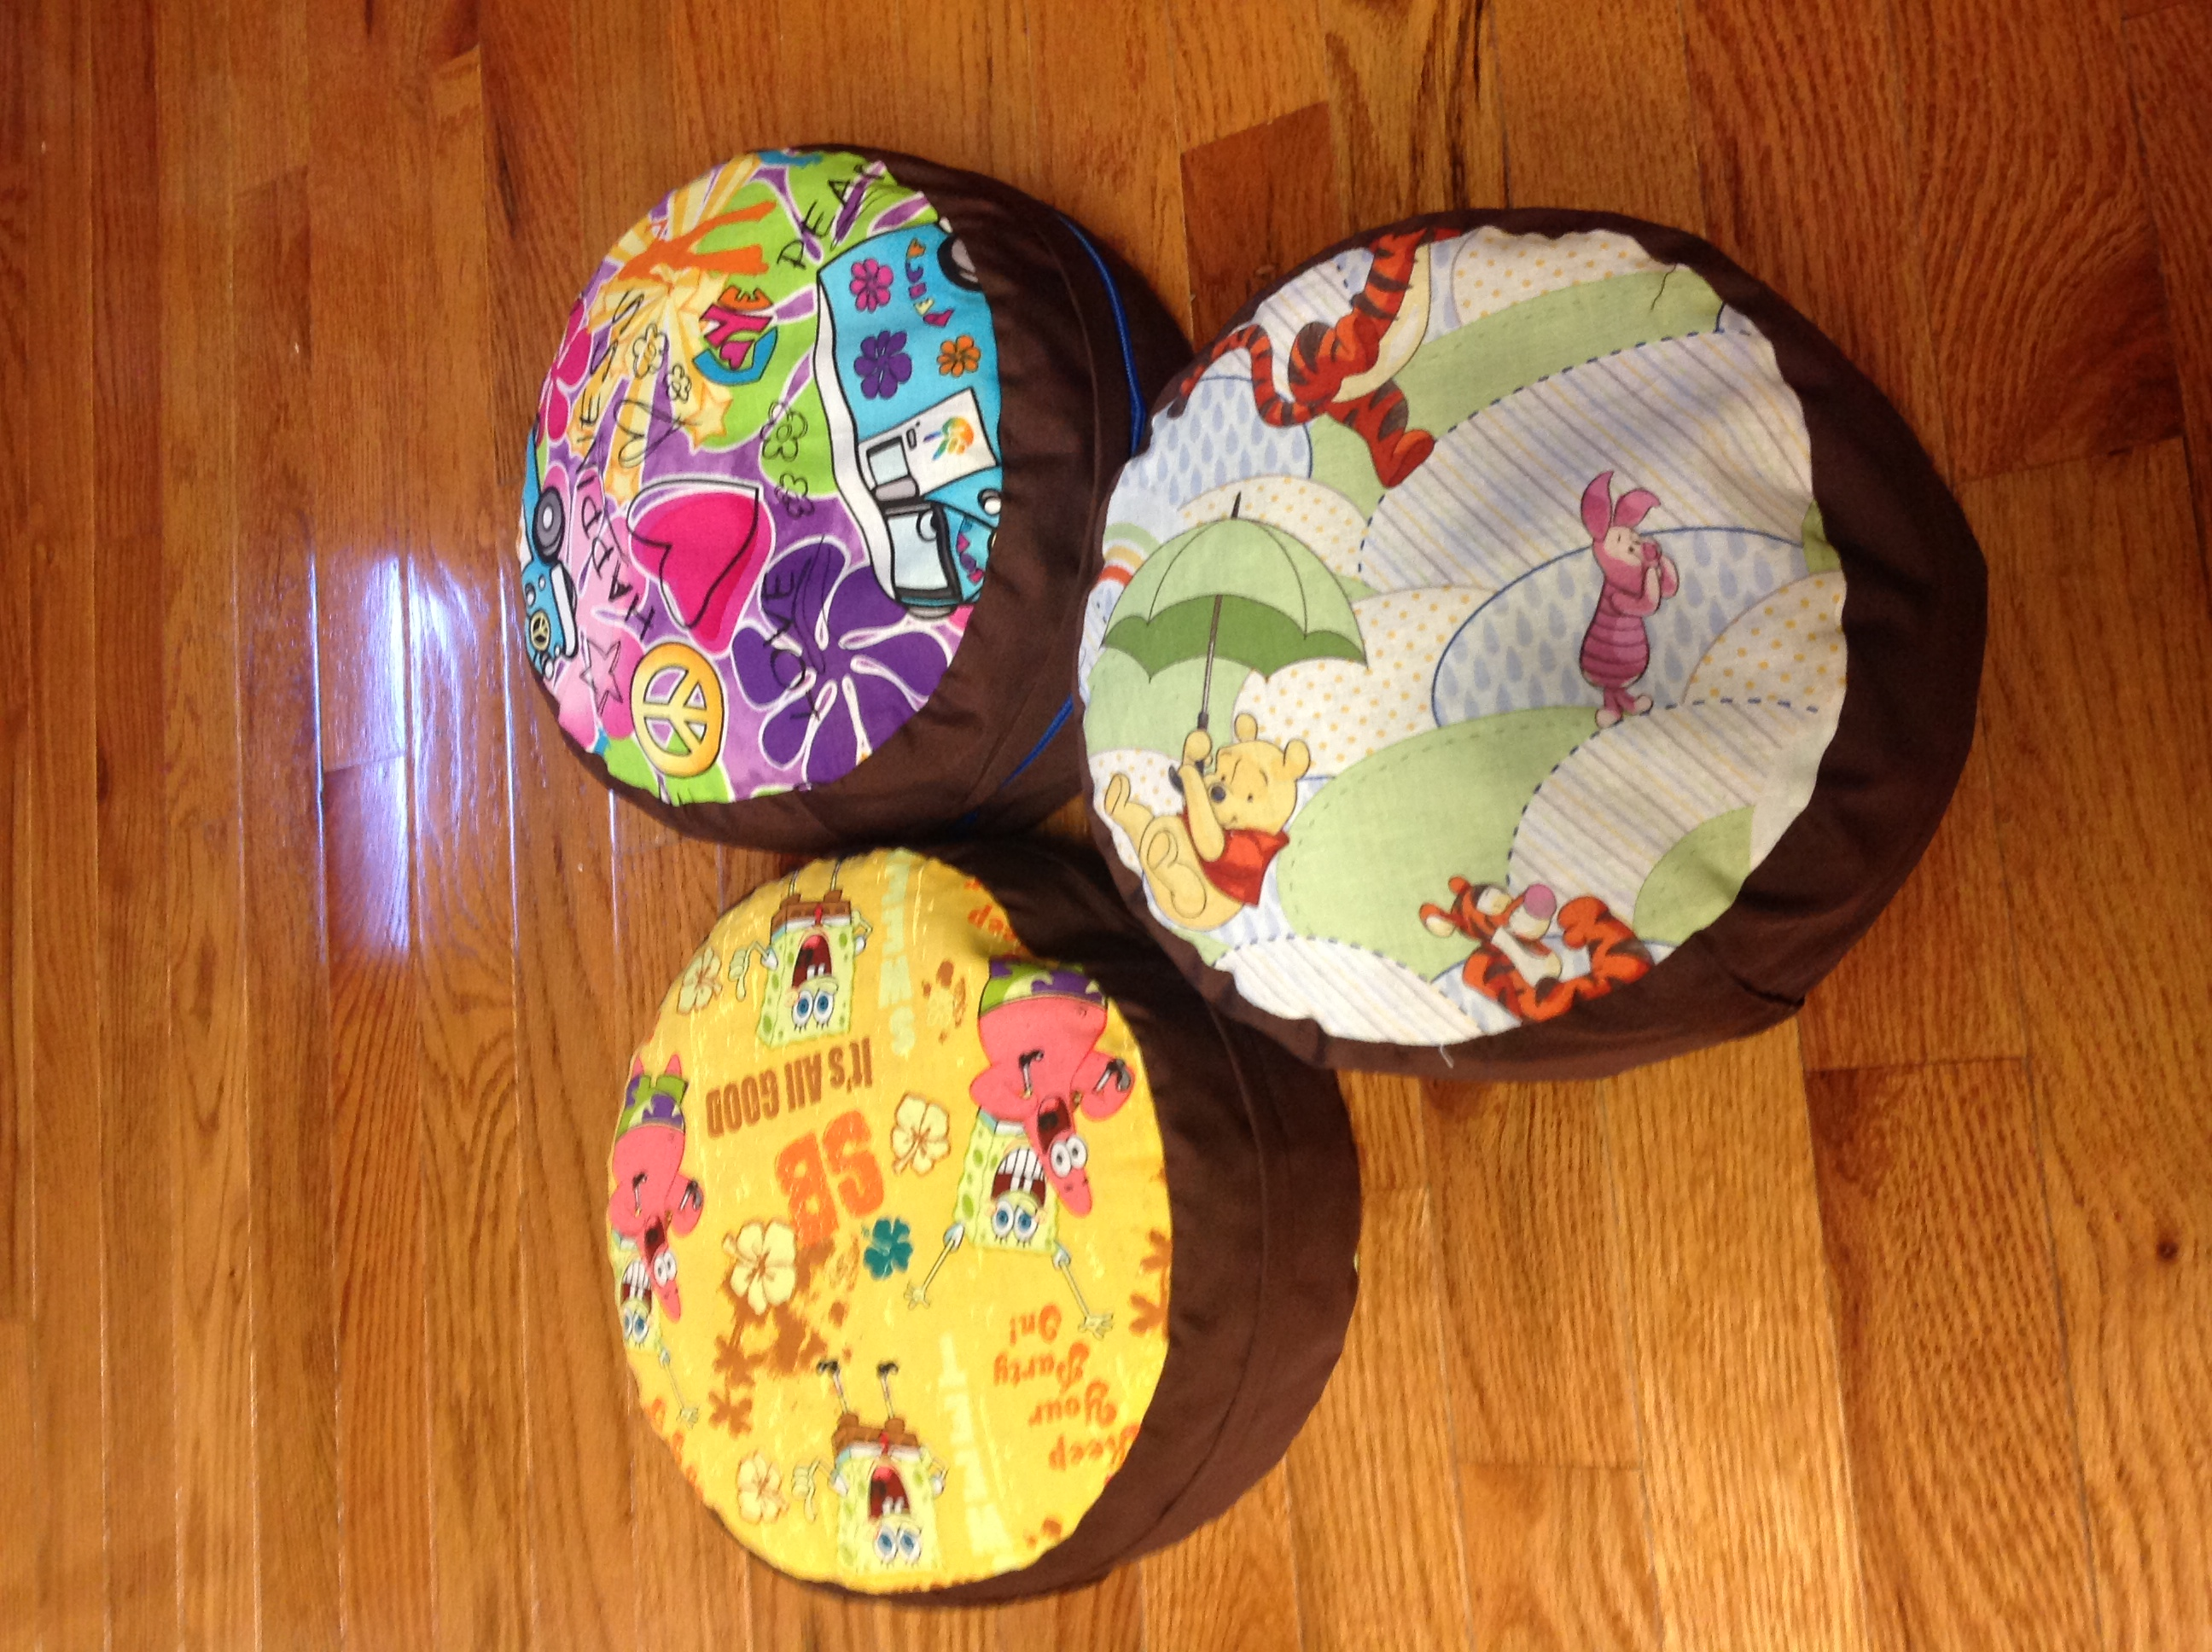 Children's Meditation Cushions